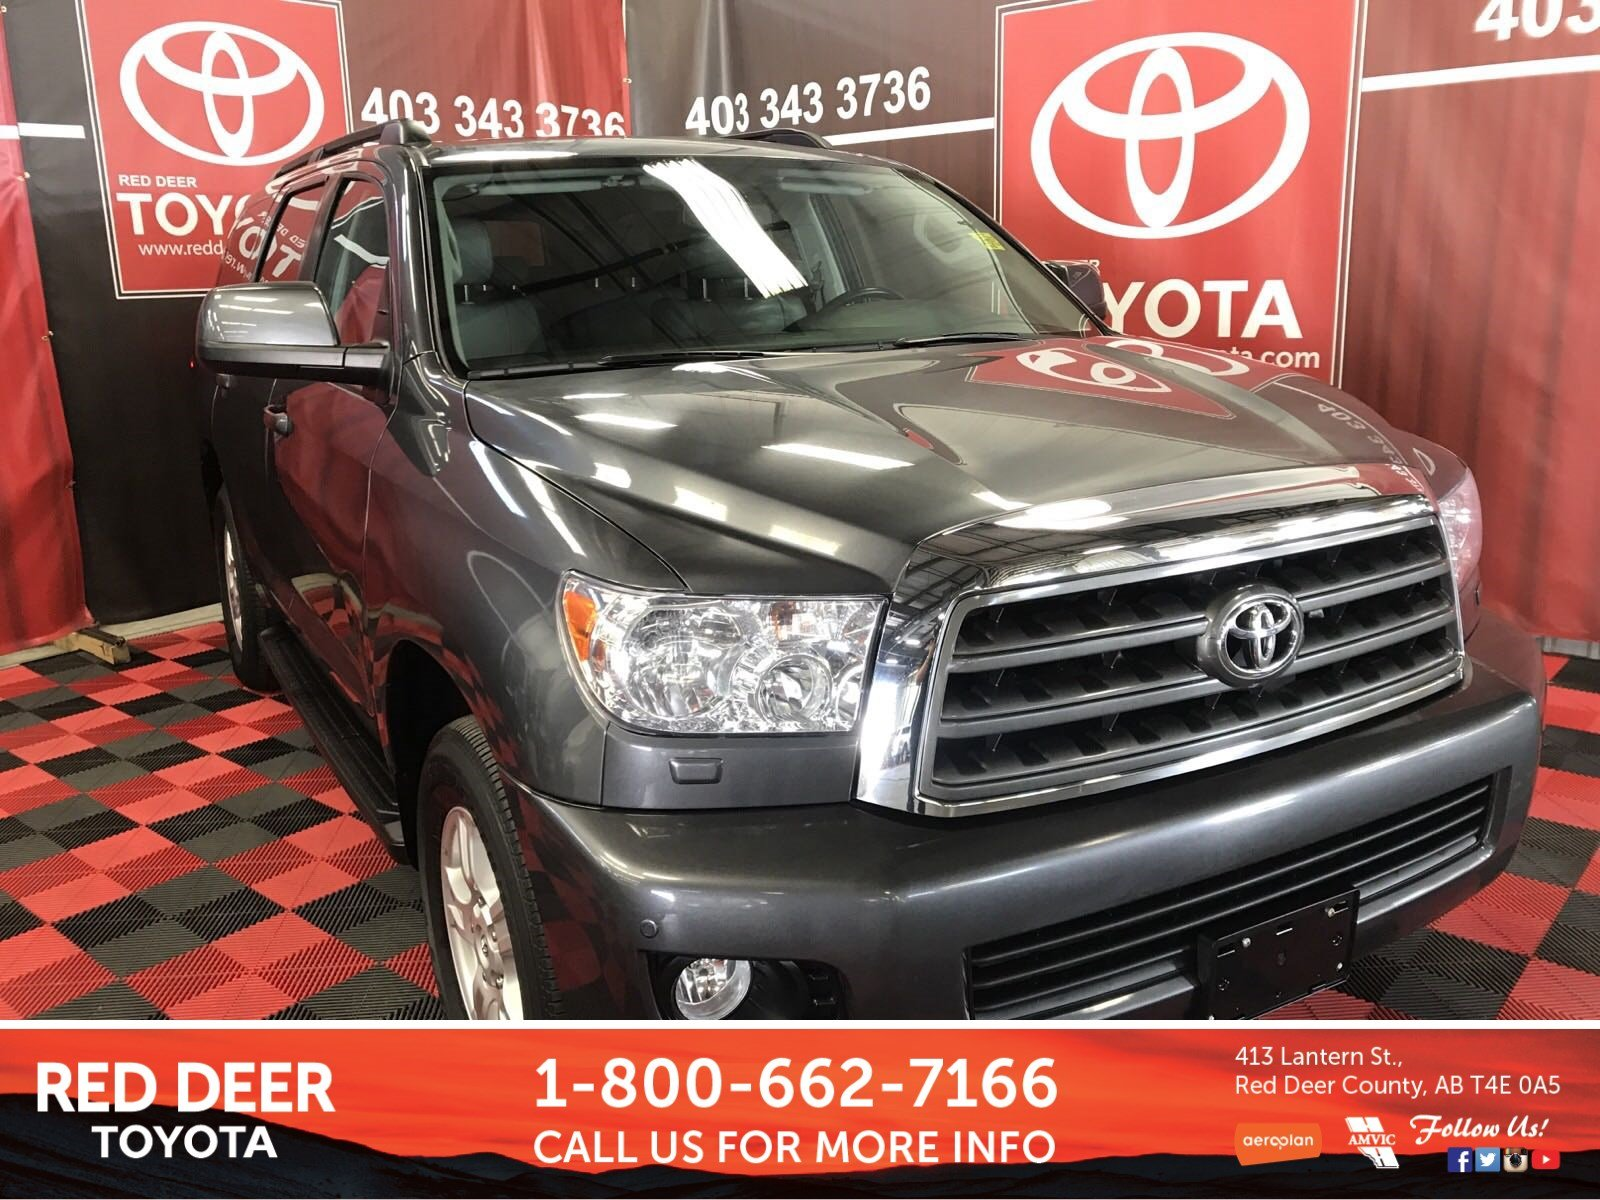 Pre Owned 2017 Toyota Sequoia SR5 Sport Utility in Red Deer County